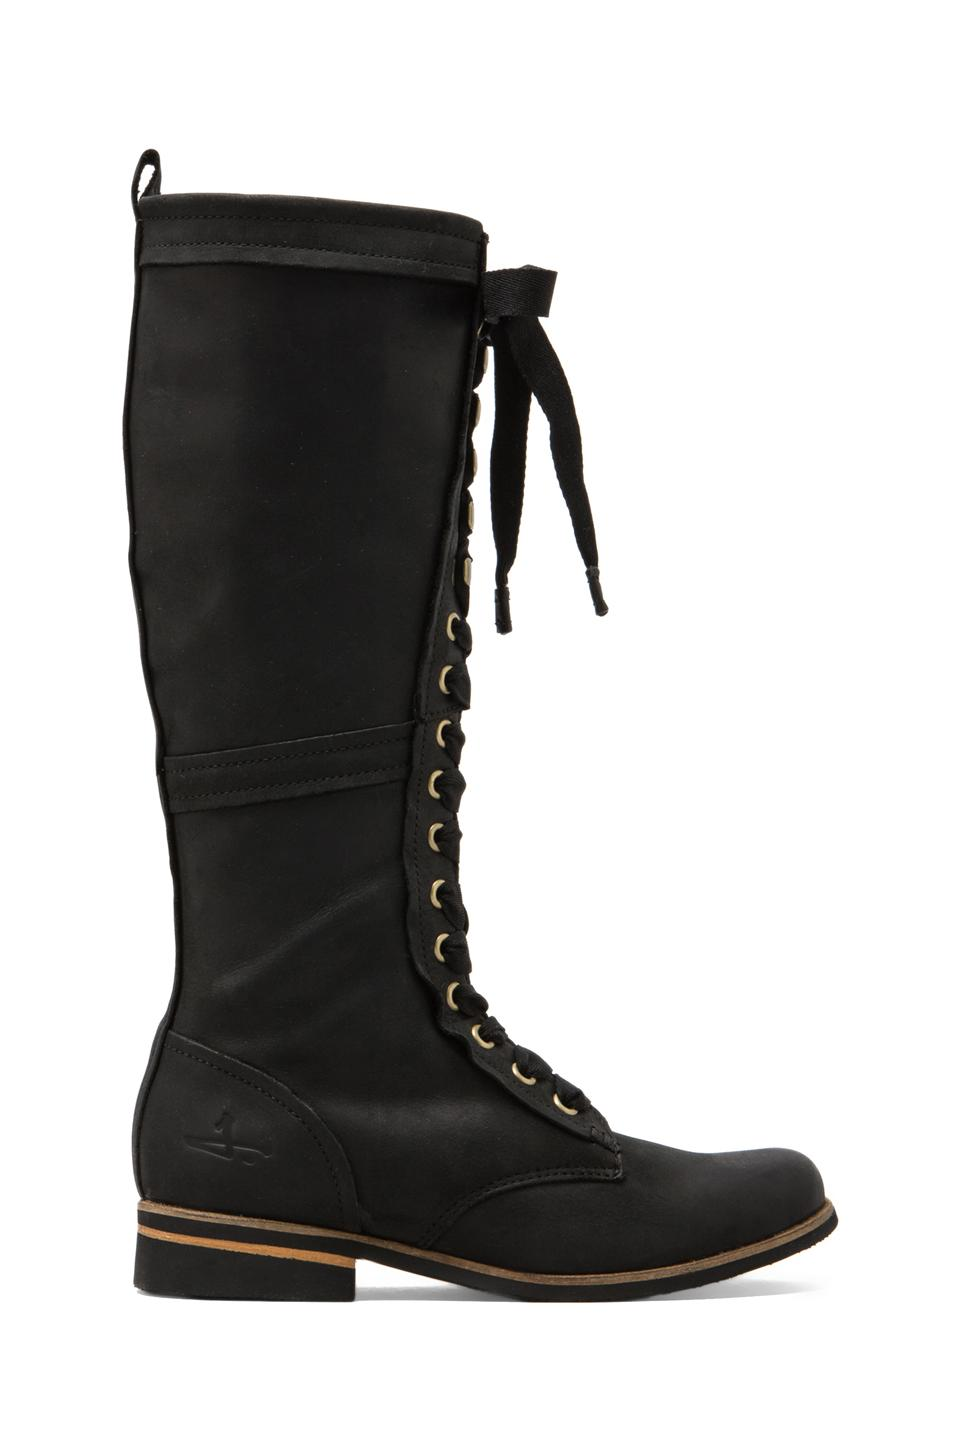 J SHOES Empire Boot in Black